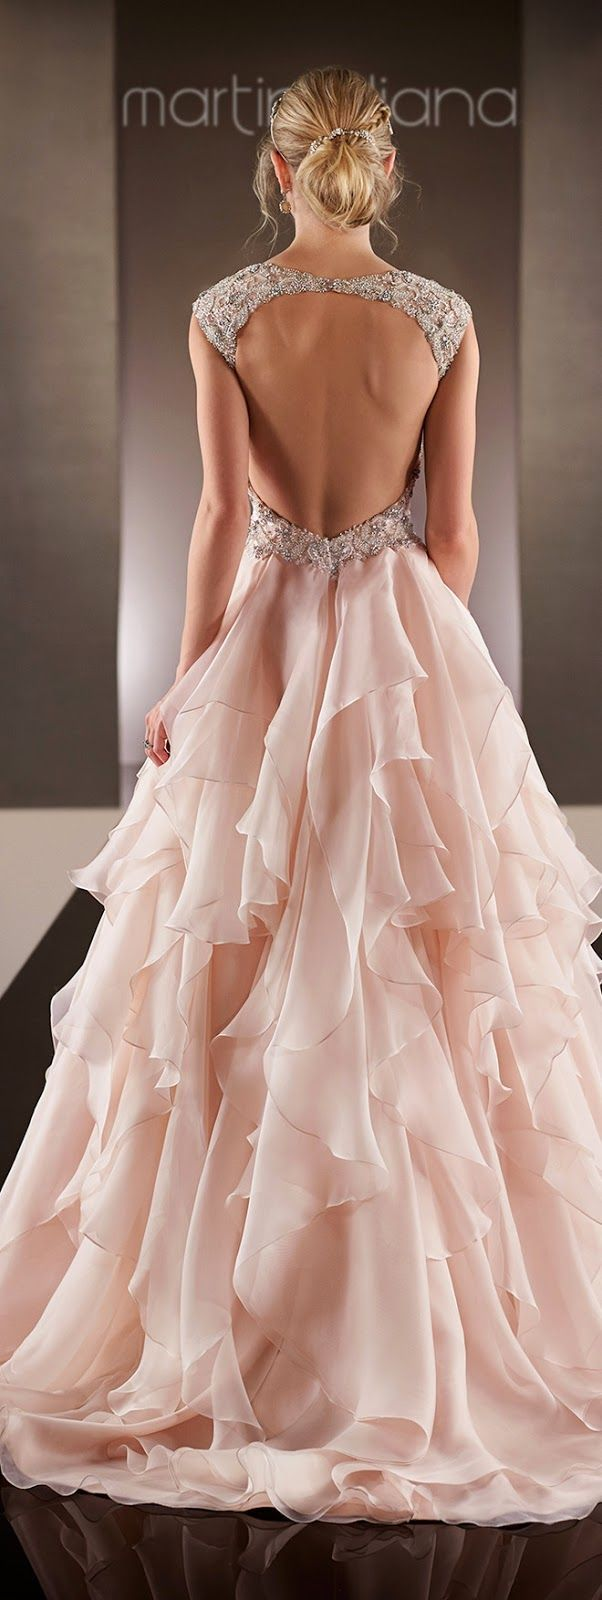 Martina liana wedding dress trouwen pinterest wedding dress